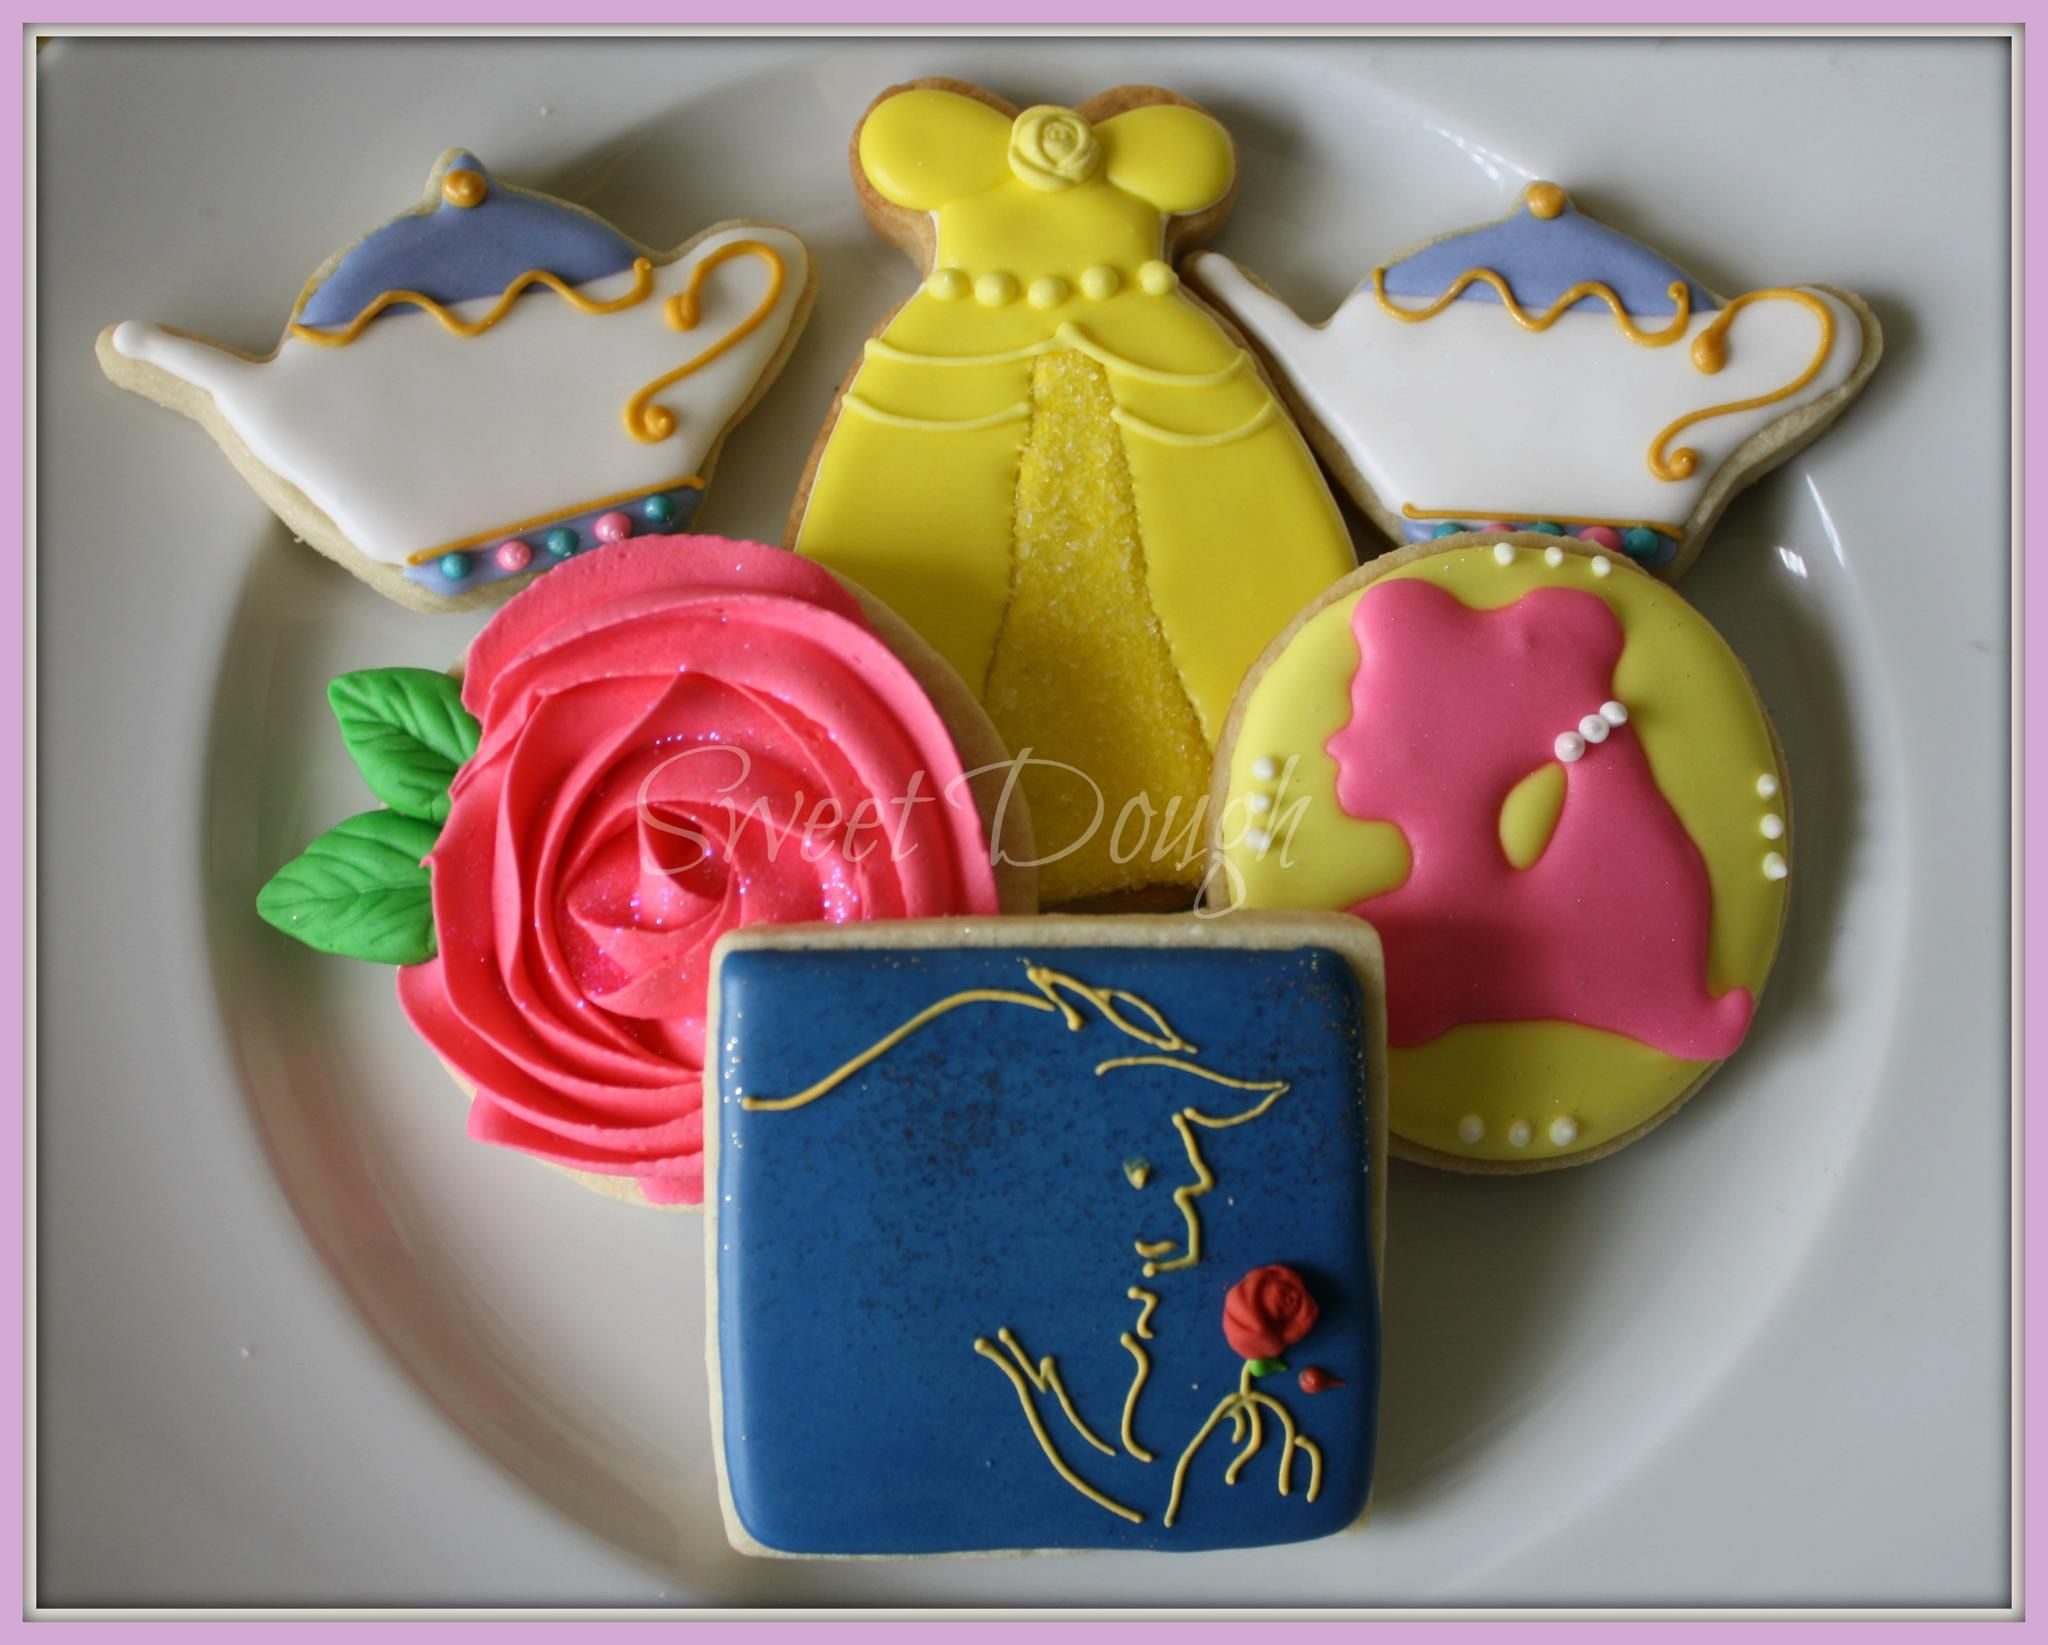 Galletas Decoradas De Princesas Beauty And The Beast Cookies By Sweet Dough Galletas